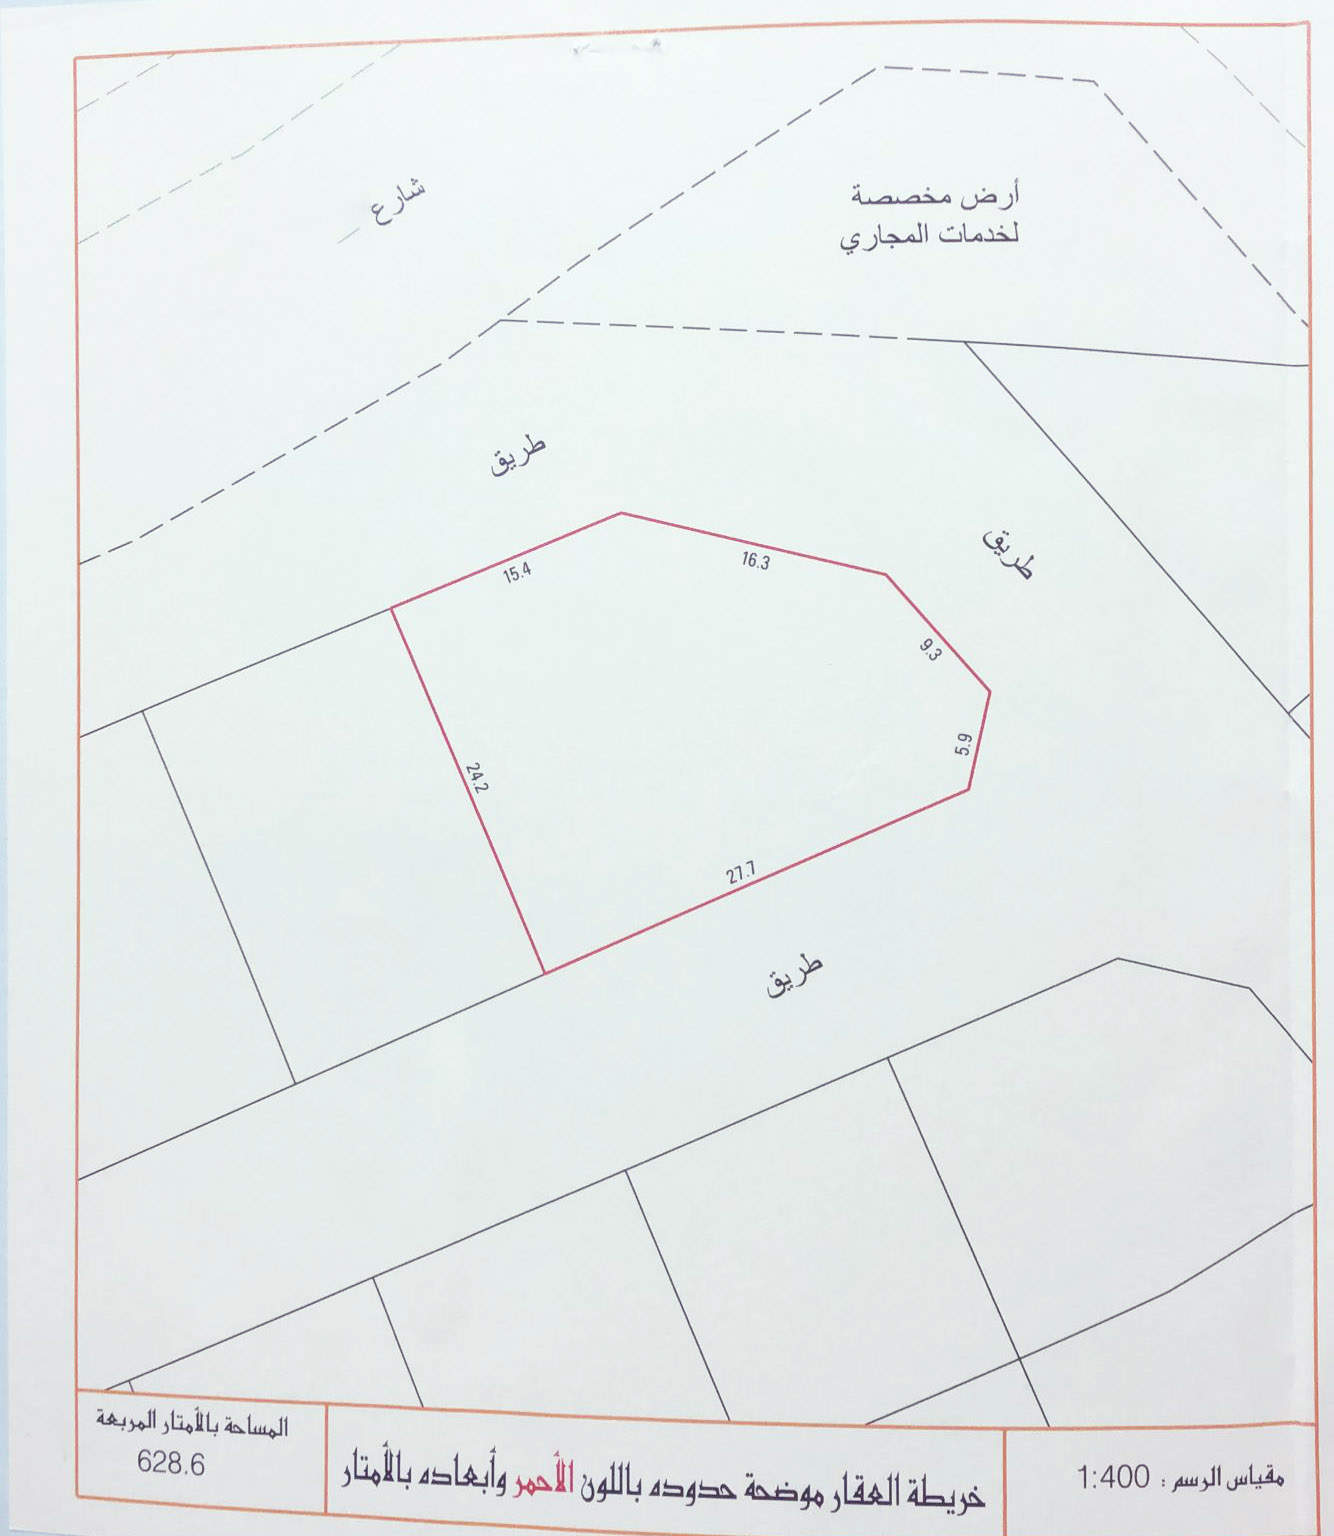 Land for sale in Sitra / Markouban Ref: SIT-MB-001